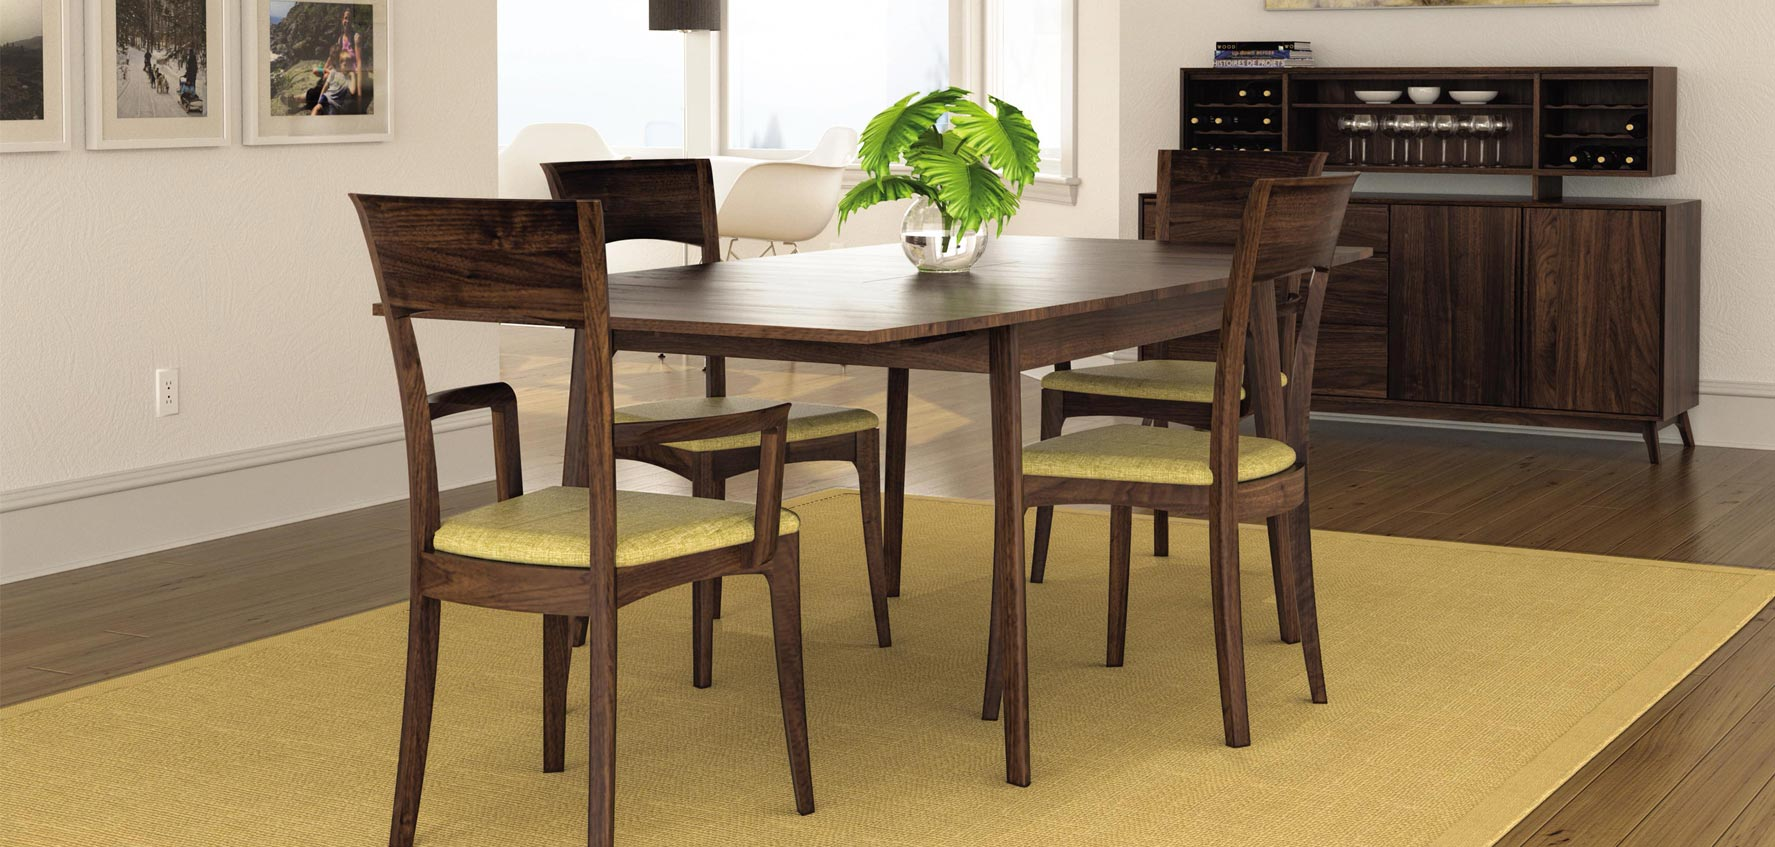 MidCentury Modern Dining Room Furniture Vermont Woods Studios